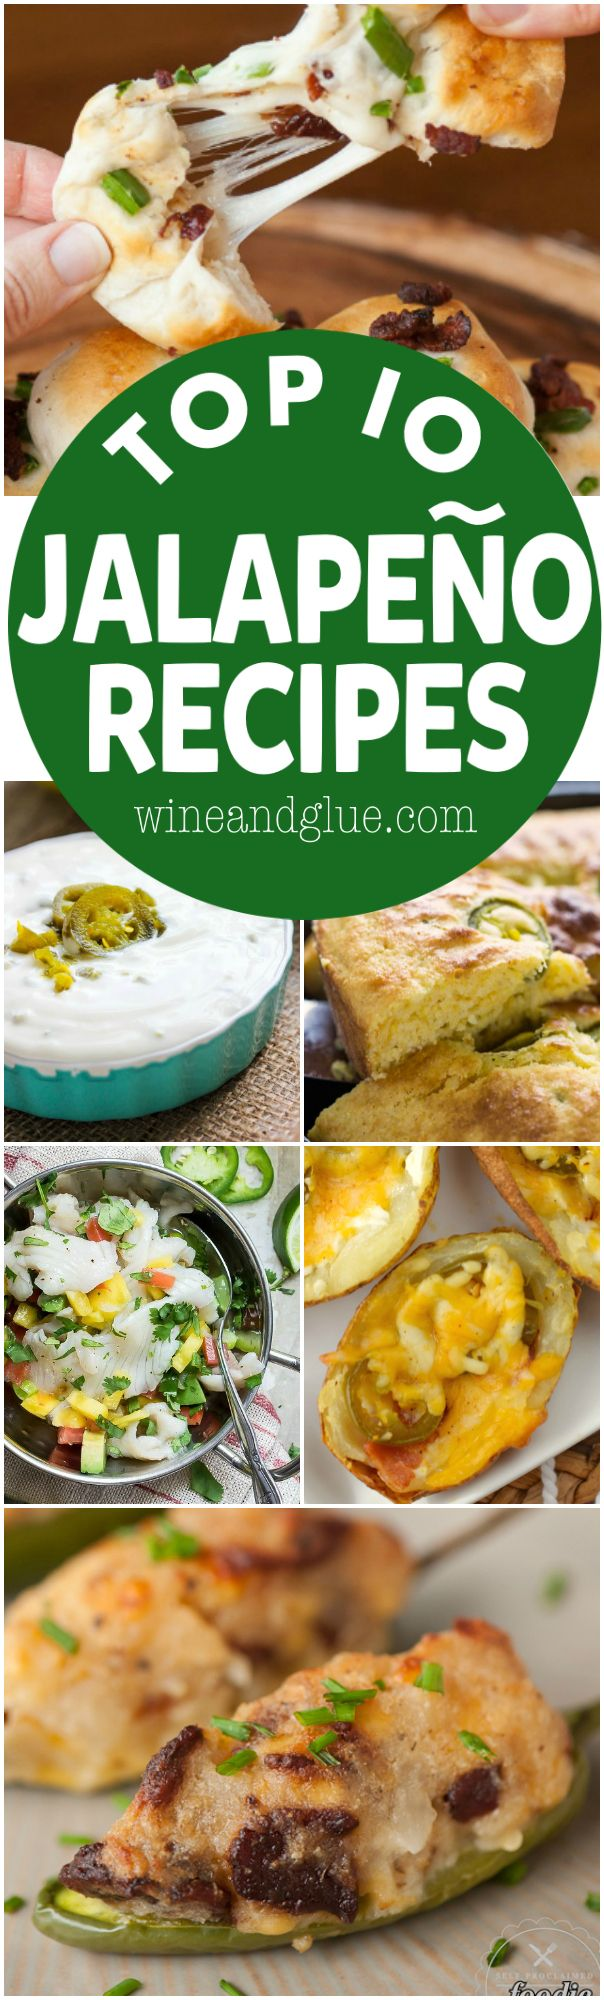 These Top 10 Jalapeño Recipes are must makes! Perfect appetizers and delicious dinners!